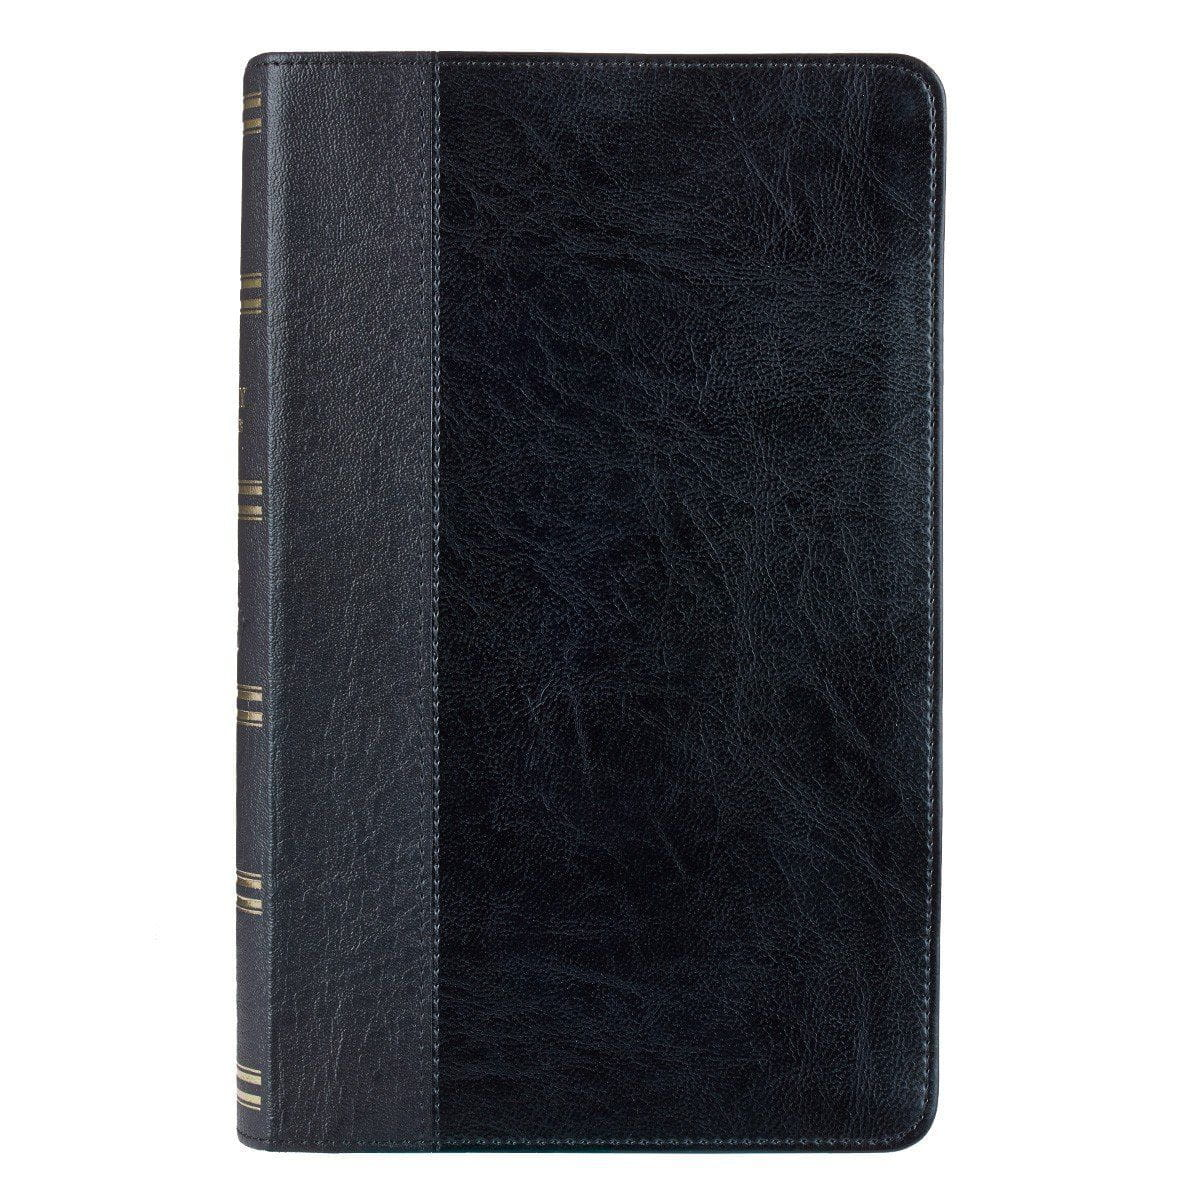 Black Quarter-bound Faux Leather KJV Giant Print Bible  with Thumb Index